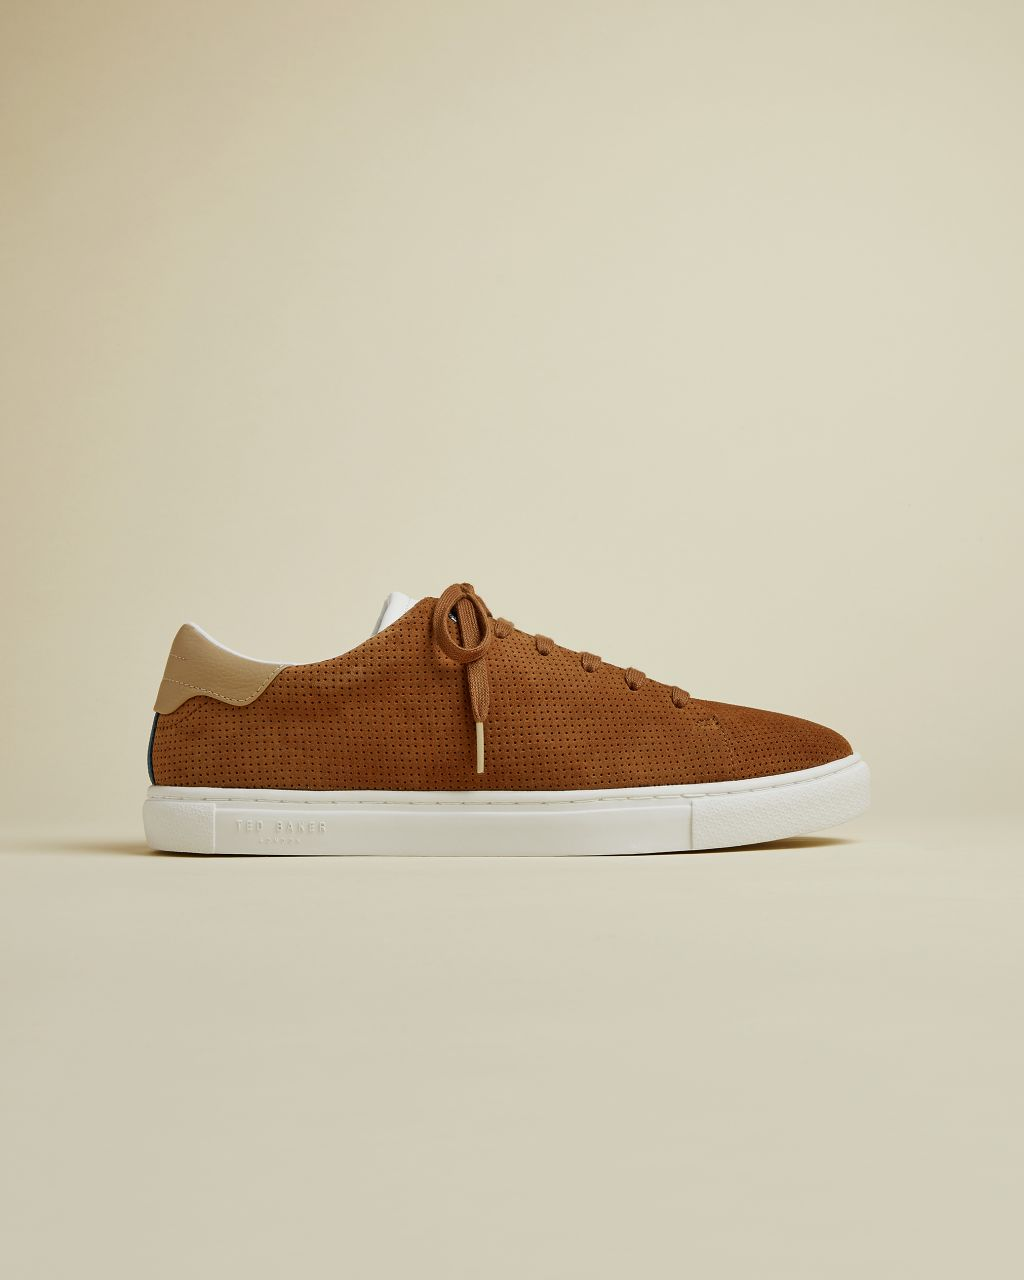 Artikel klicken und genauer betrachten! - Searching for a slightly less sporty alternative to trainers? Look no further, RUENNER has arrived. Crafted in suede, this lace up pairing has a contrast colour detail on the heel - wear on weekends, or with smarter trousers on date night for an effortless casual edge. - Ted Baker footwear collection - Suede - Lace up - Contrast detail on heel - Ted Baker-branded | im Online Shop kaufen